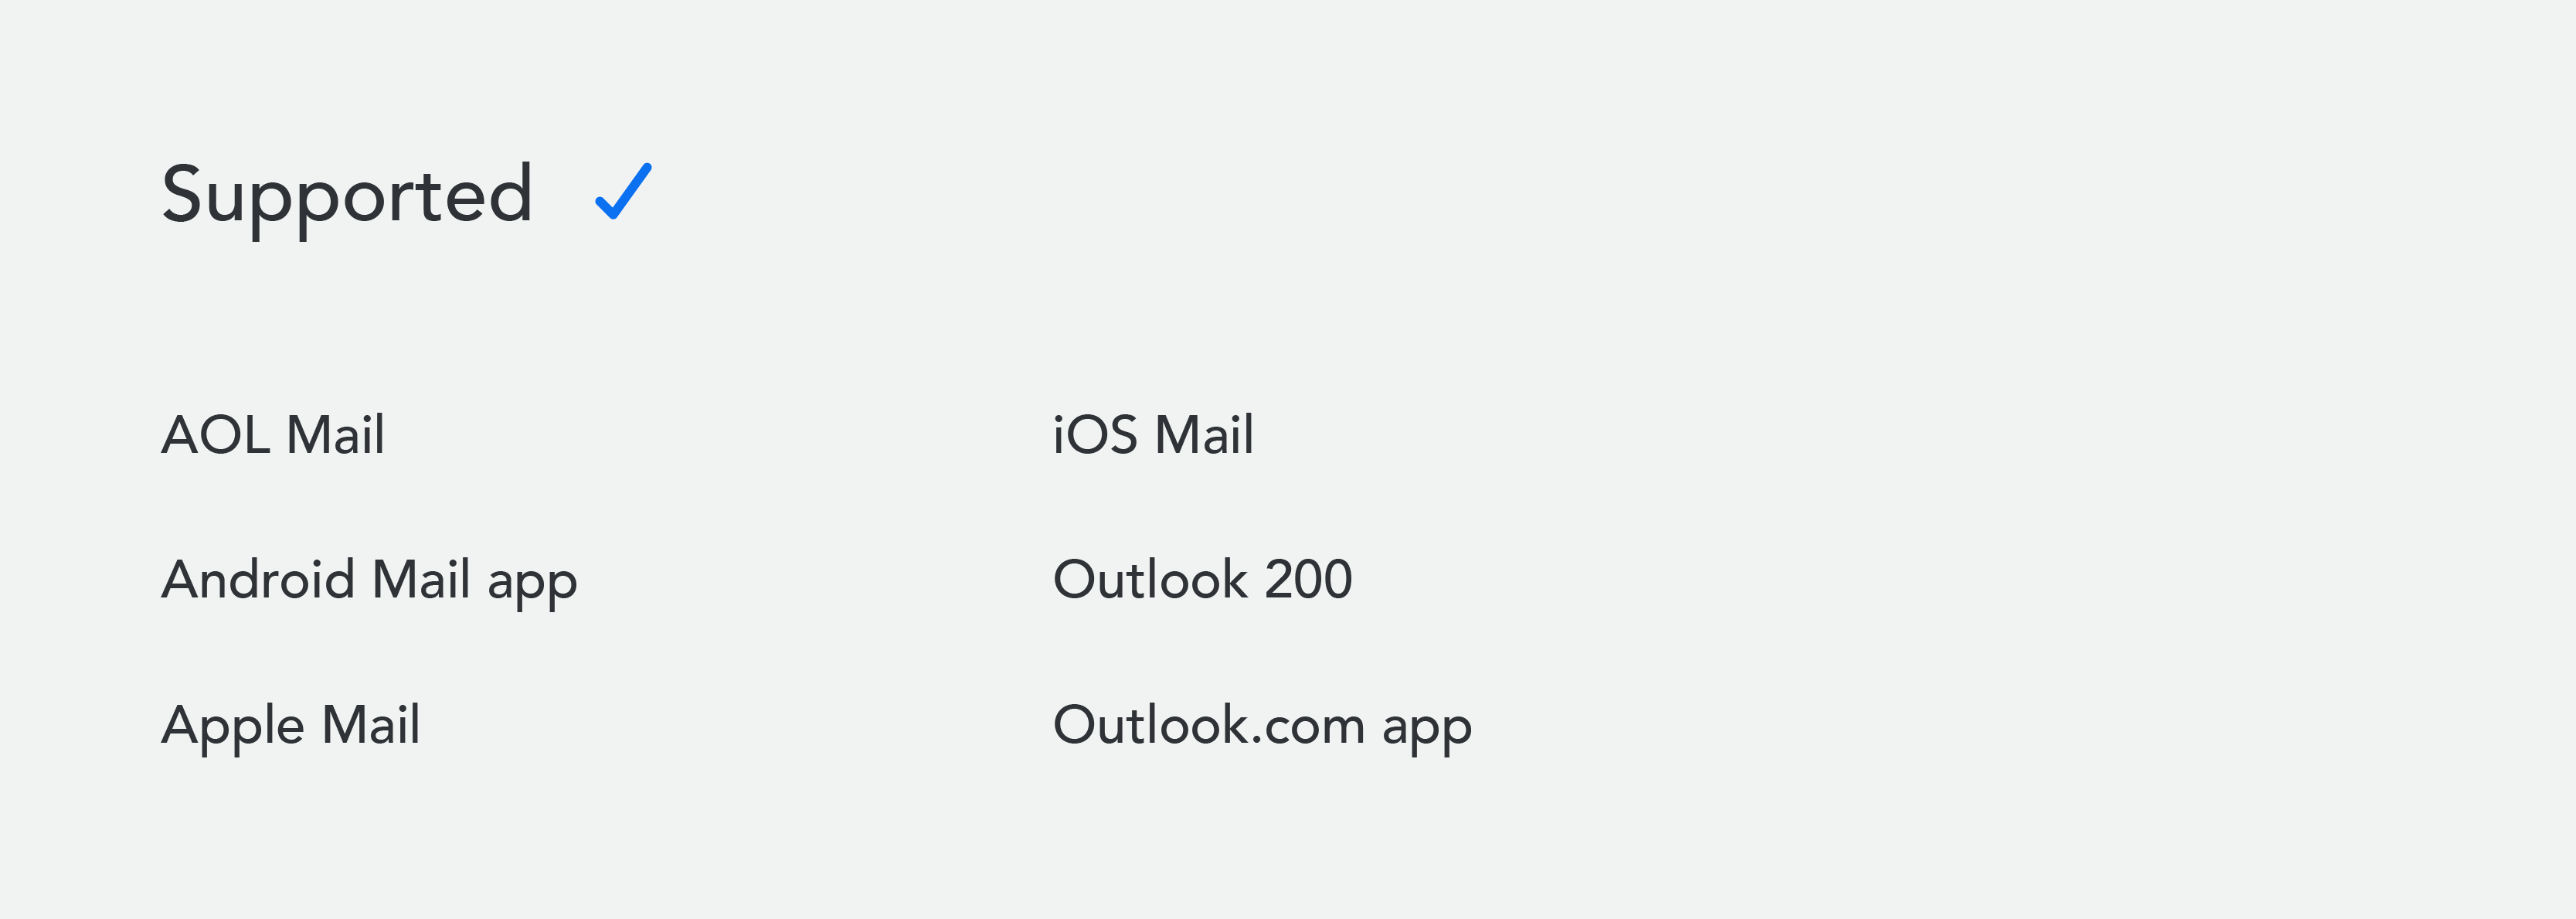 Fonts supported: AOL Mail, Android Mail app, Apple Mail, iOS Mail, Outlook 200, Outlook.com app